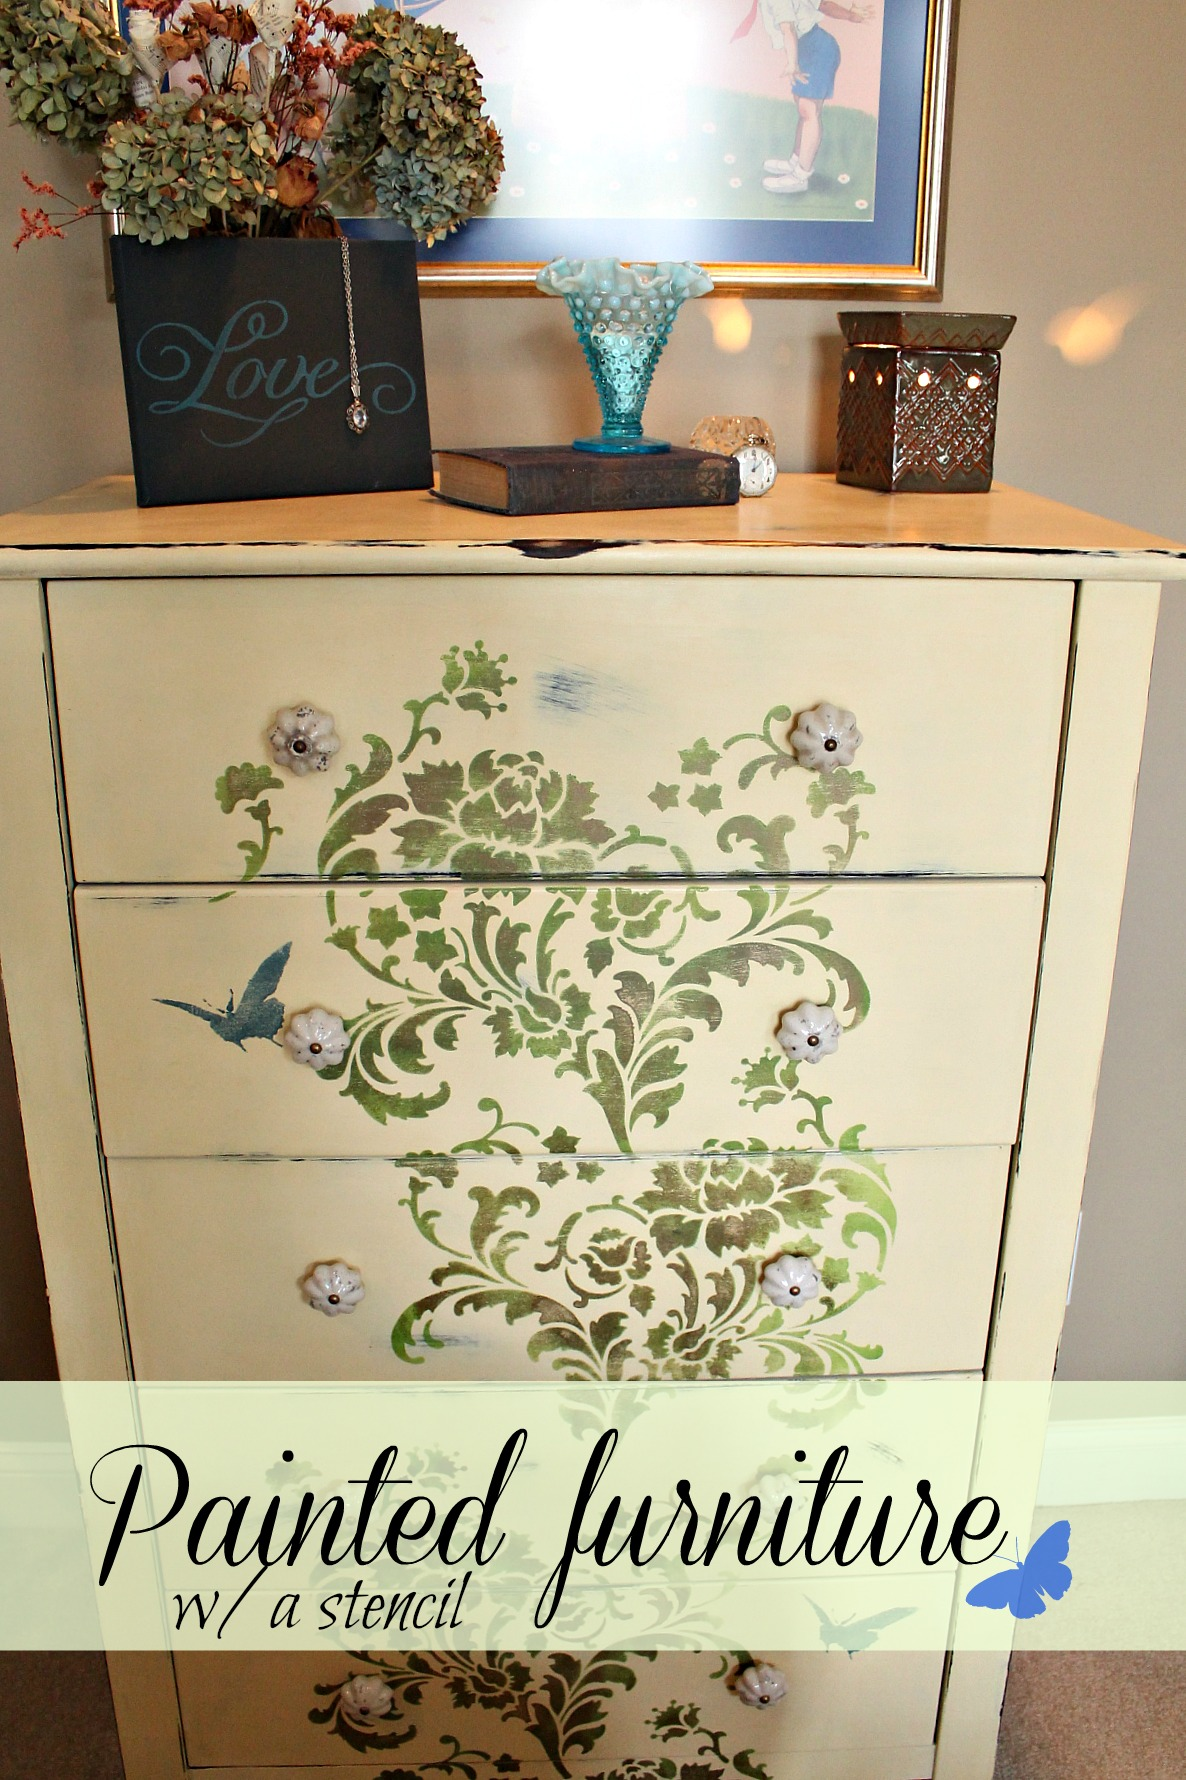 painted furniture with a stencil